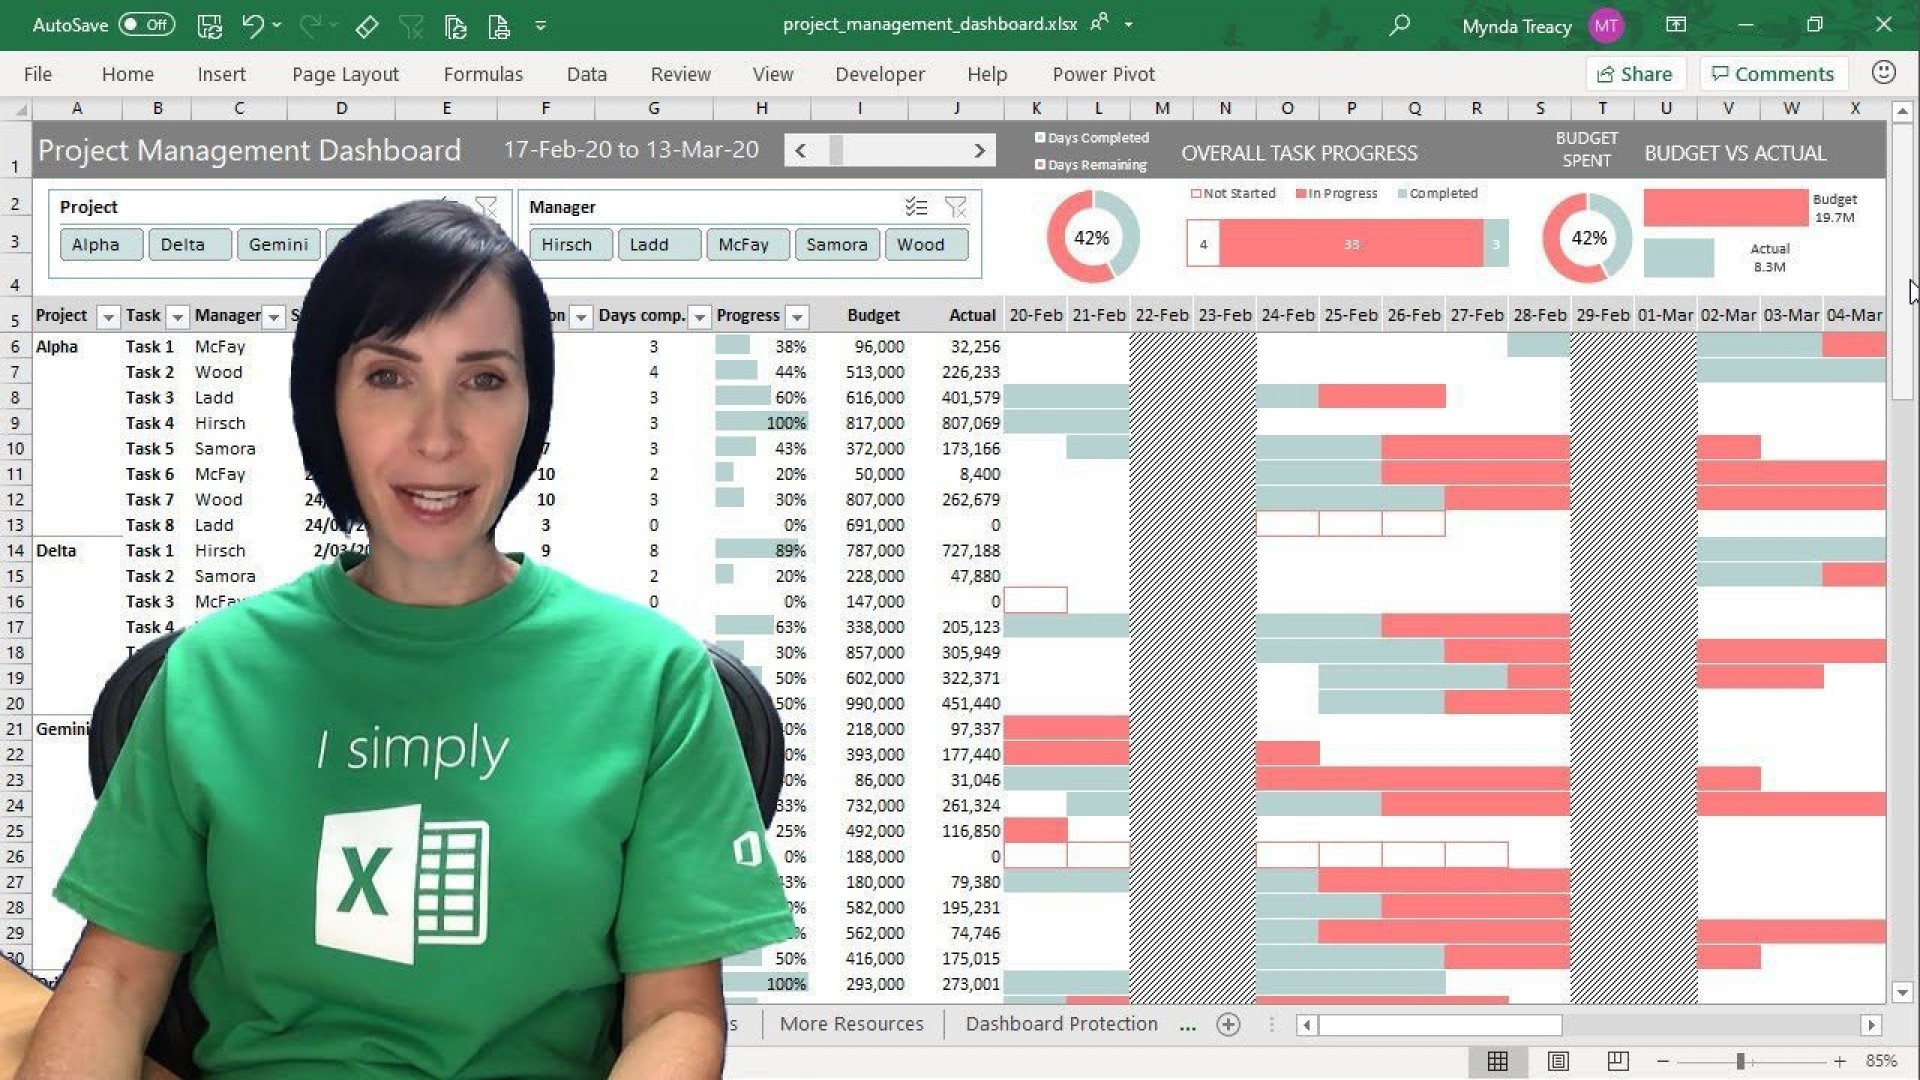 004 Breathtaking Project Management Dashboard Excel Template Free Sample  Simple Multiple1920